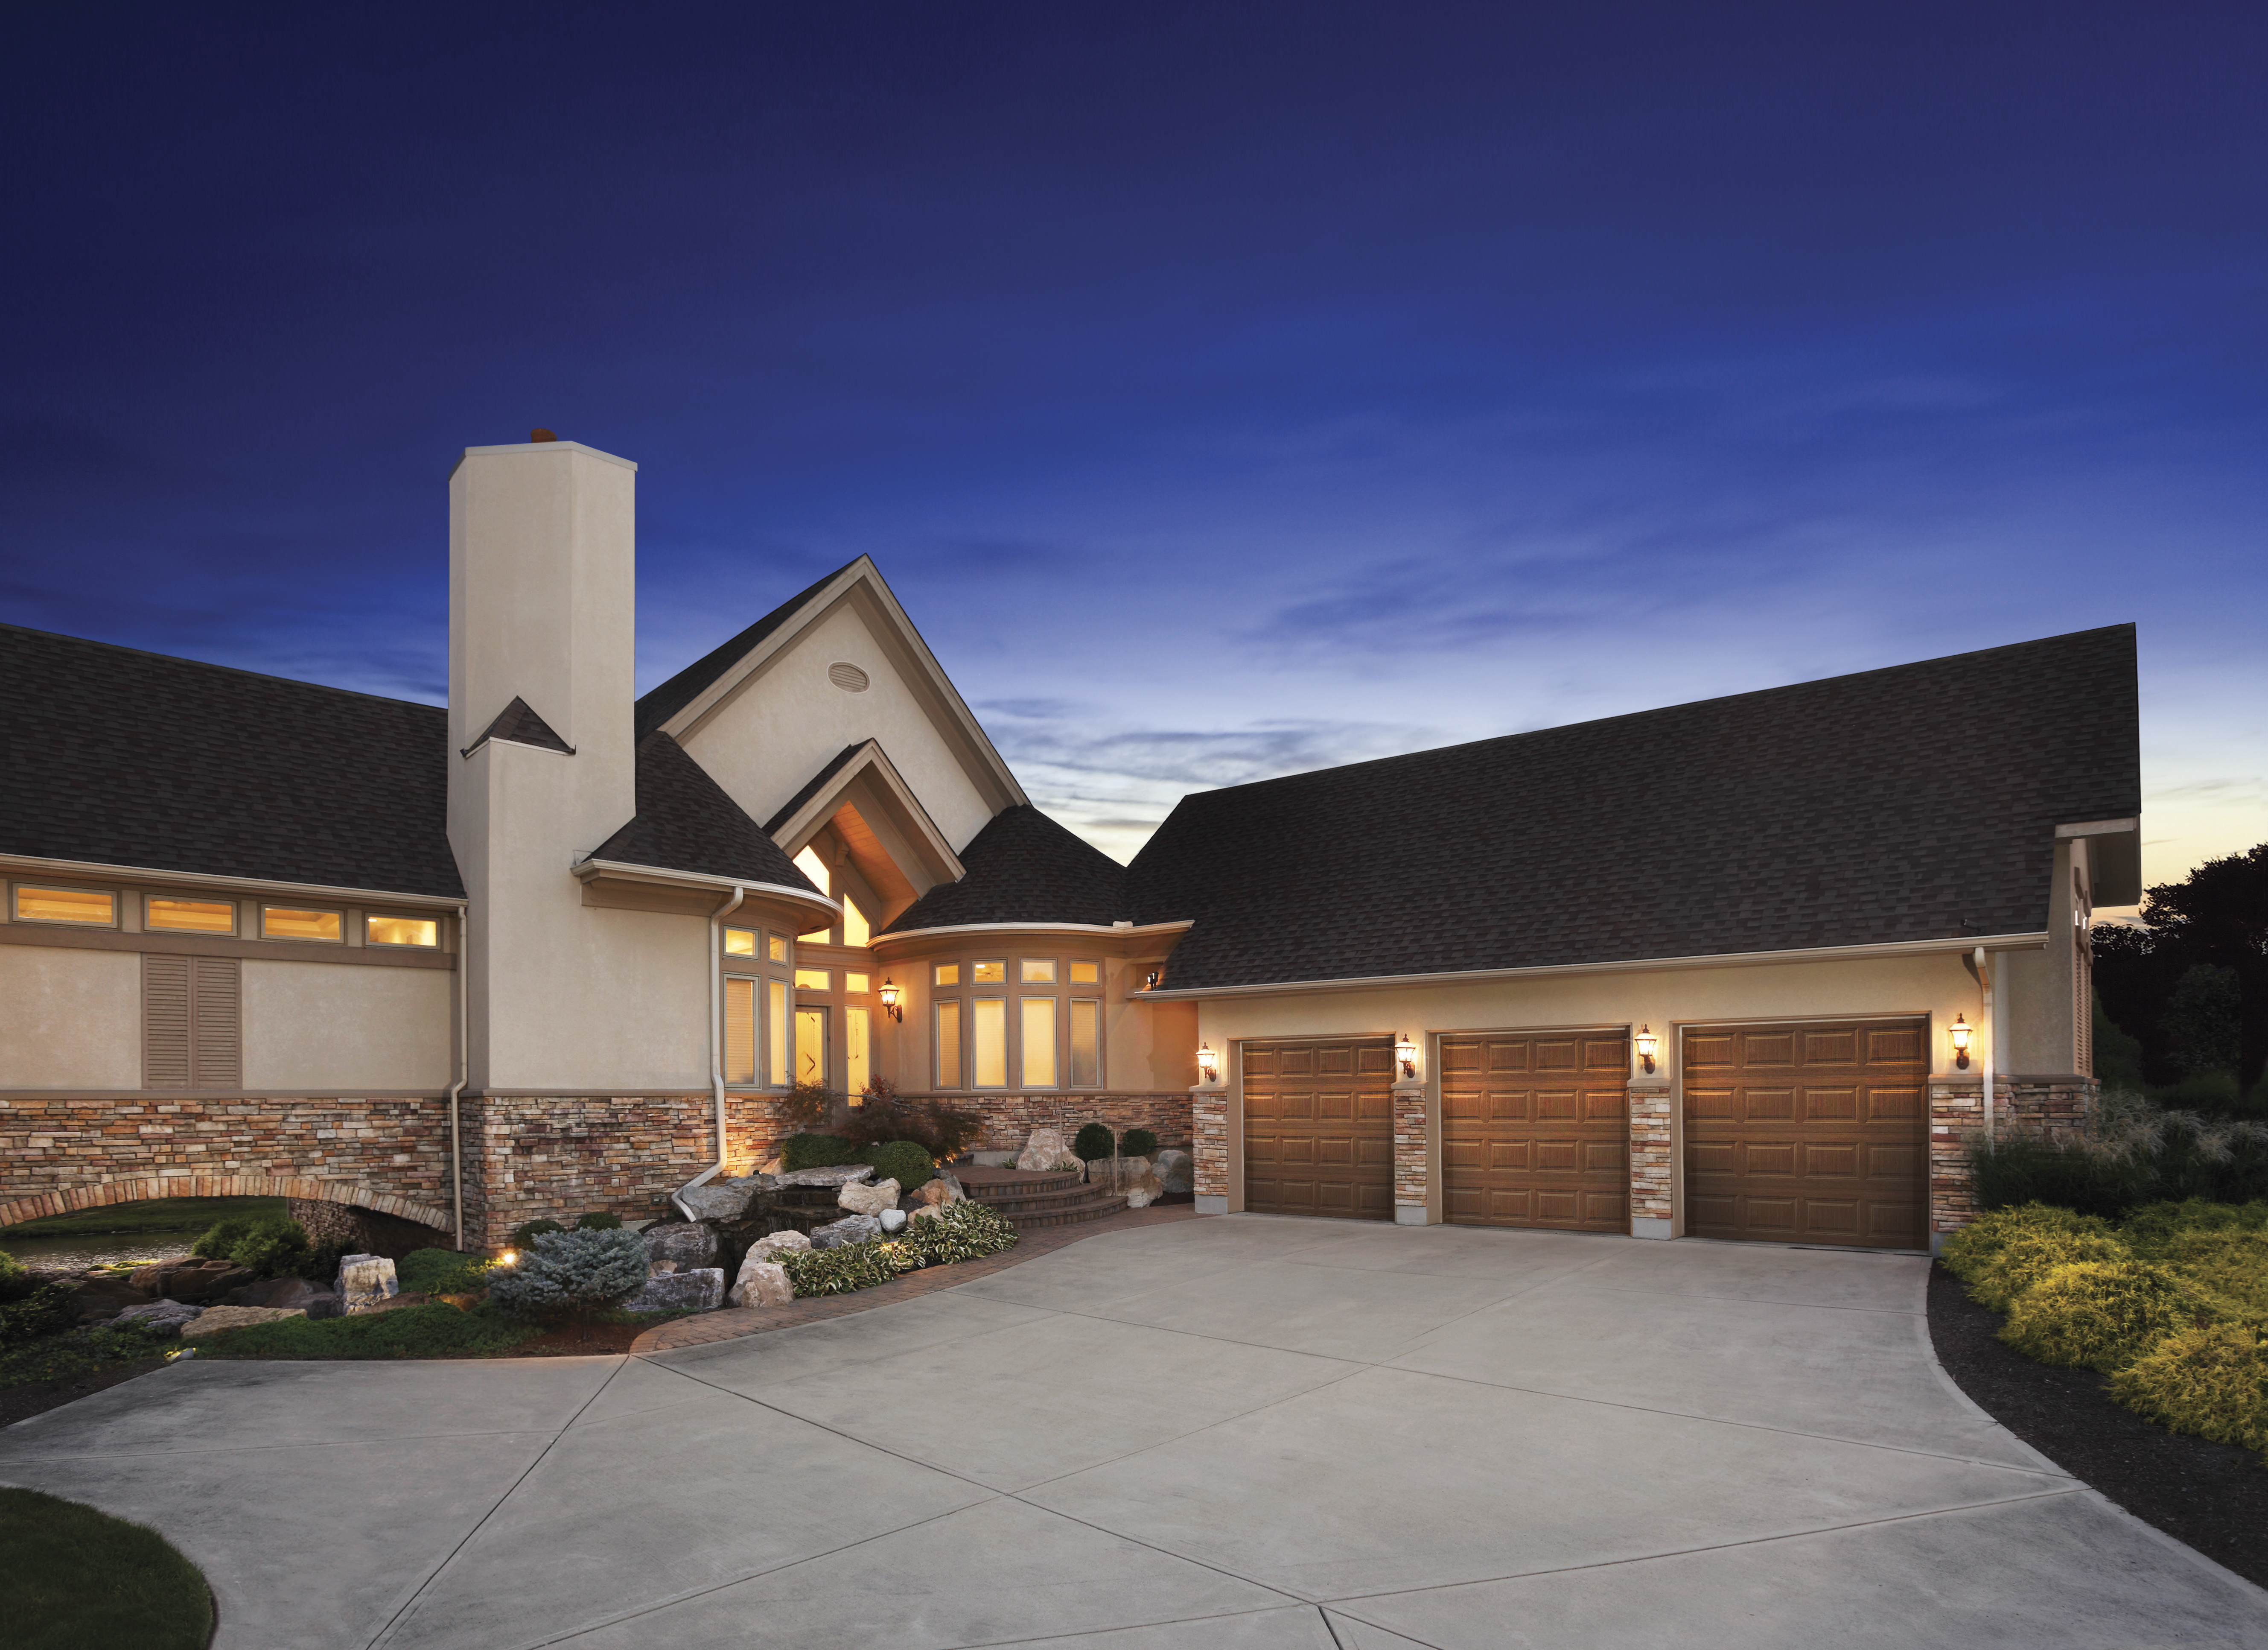 About Our Residential Garage Door Repair in Colorado Springs